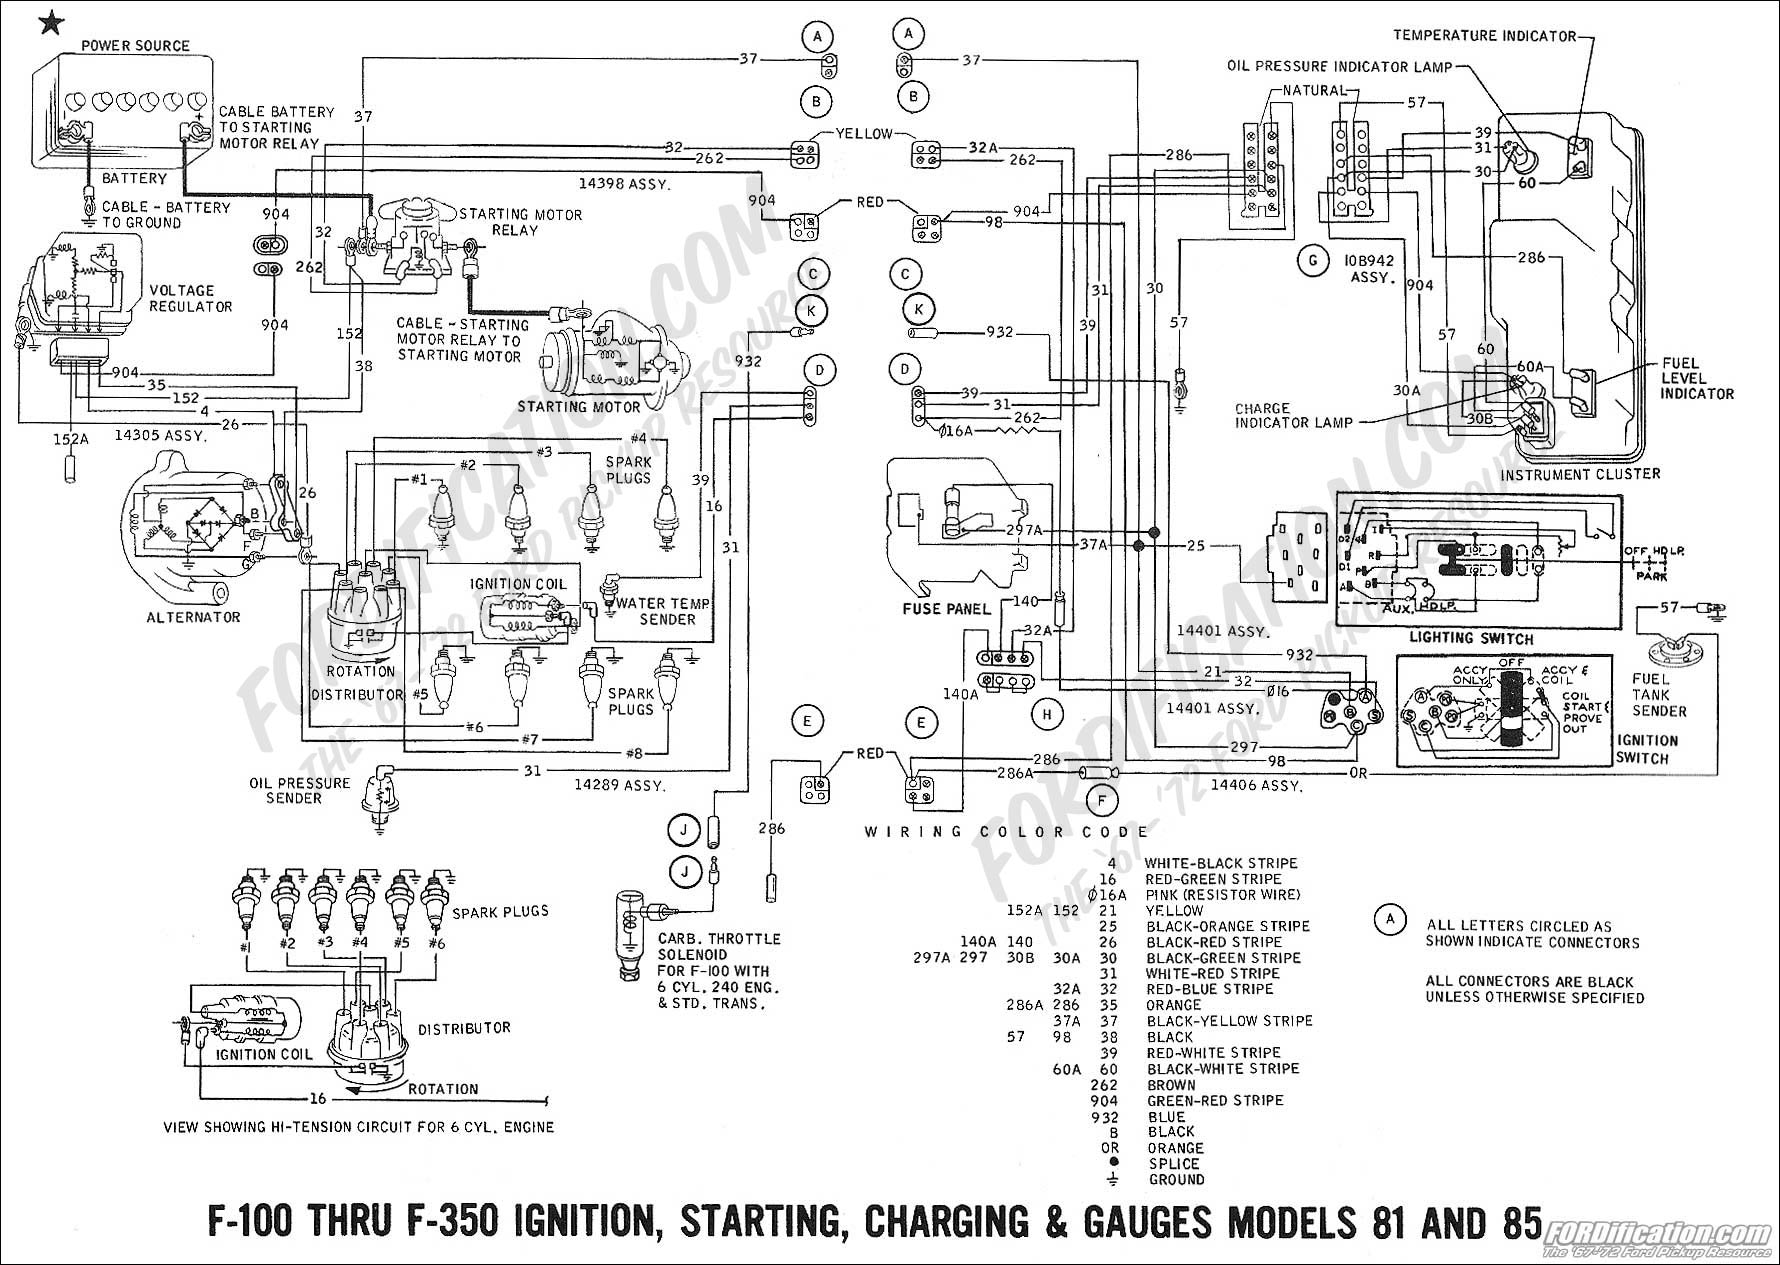 Wiring Diagram For 1989 Chevy 350 Engine Free You Ford E Dash Simple Schema Rh 24 Aspire Atlantis De Sbc Mercruiser